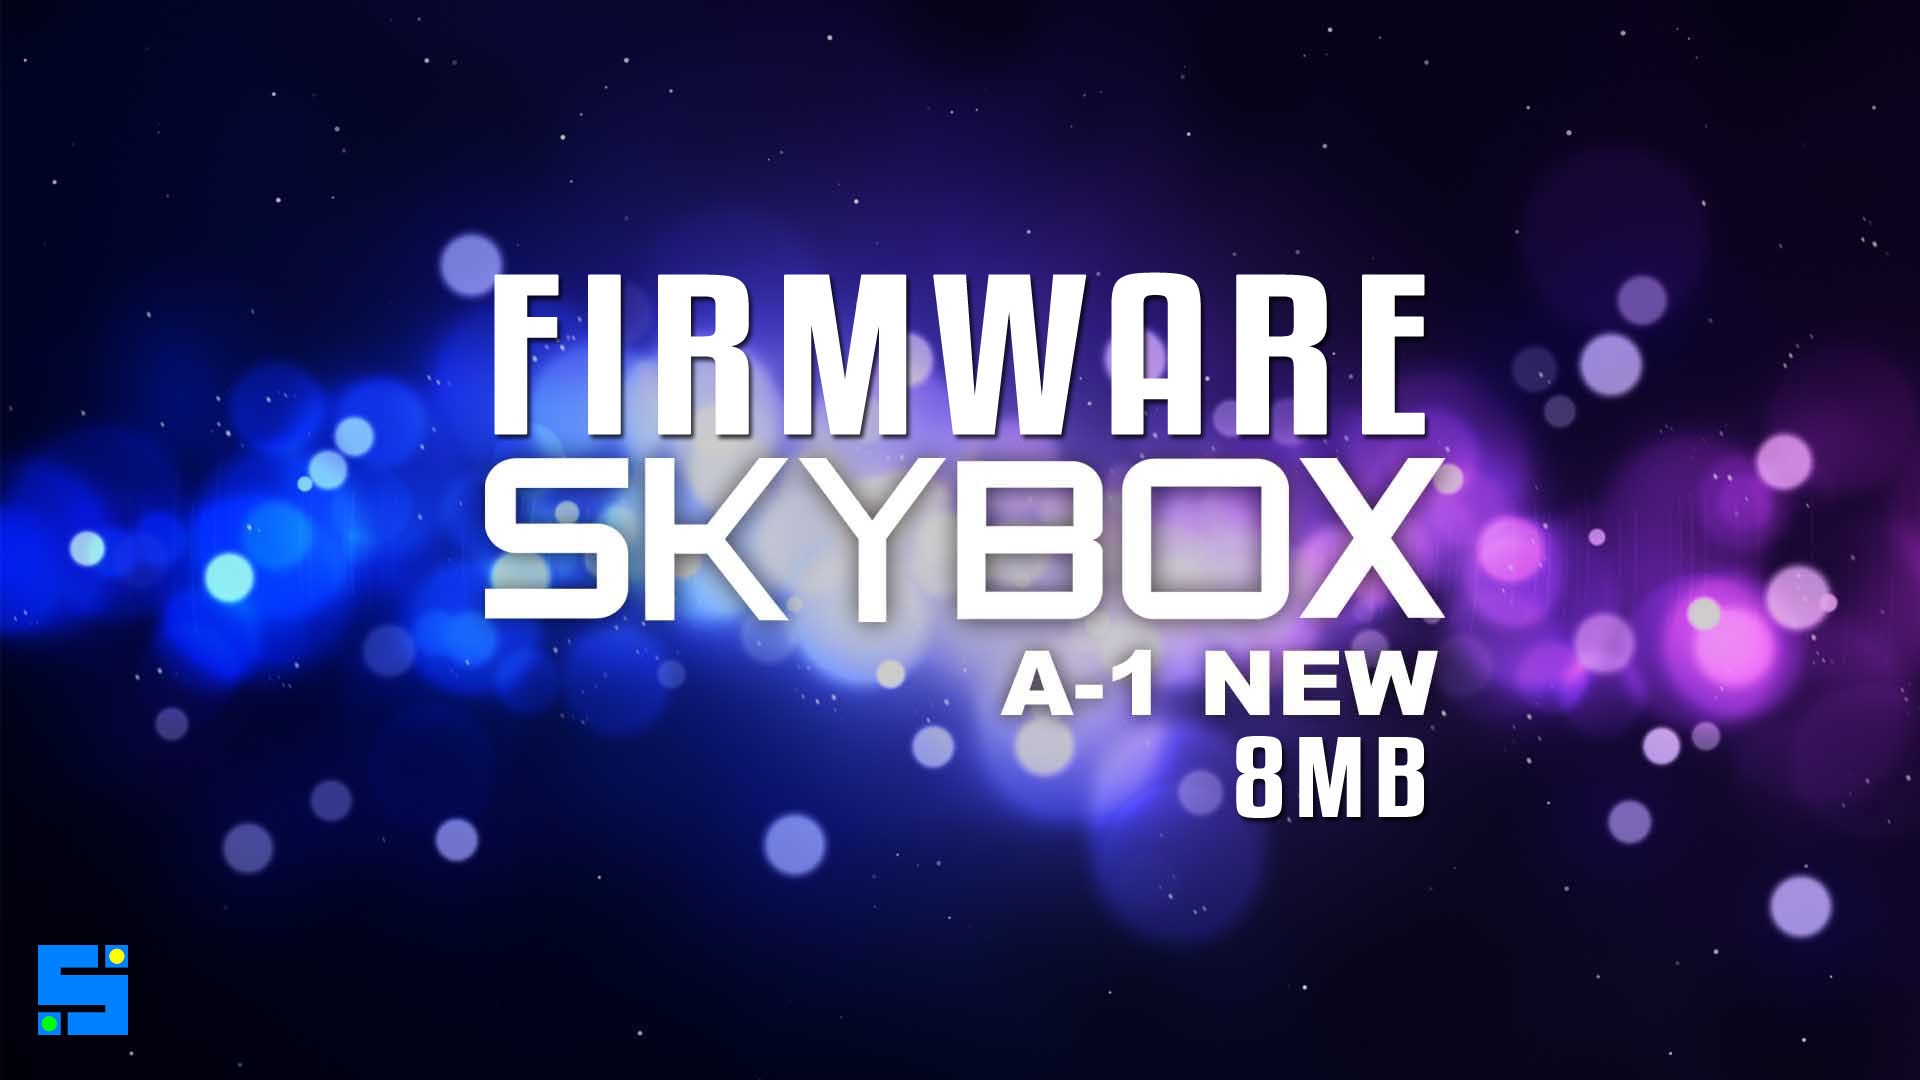 Software Skybox A1 AVS New SW Firmware 8MB Terbaru